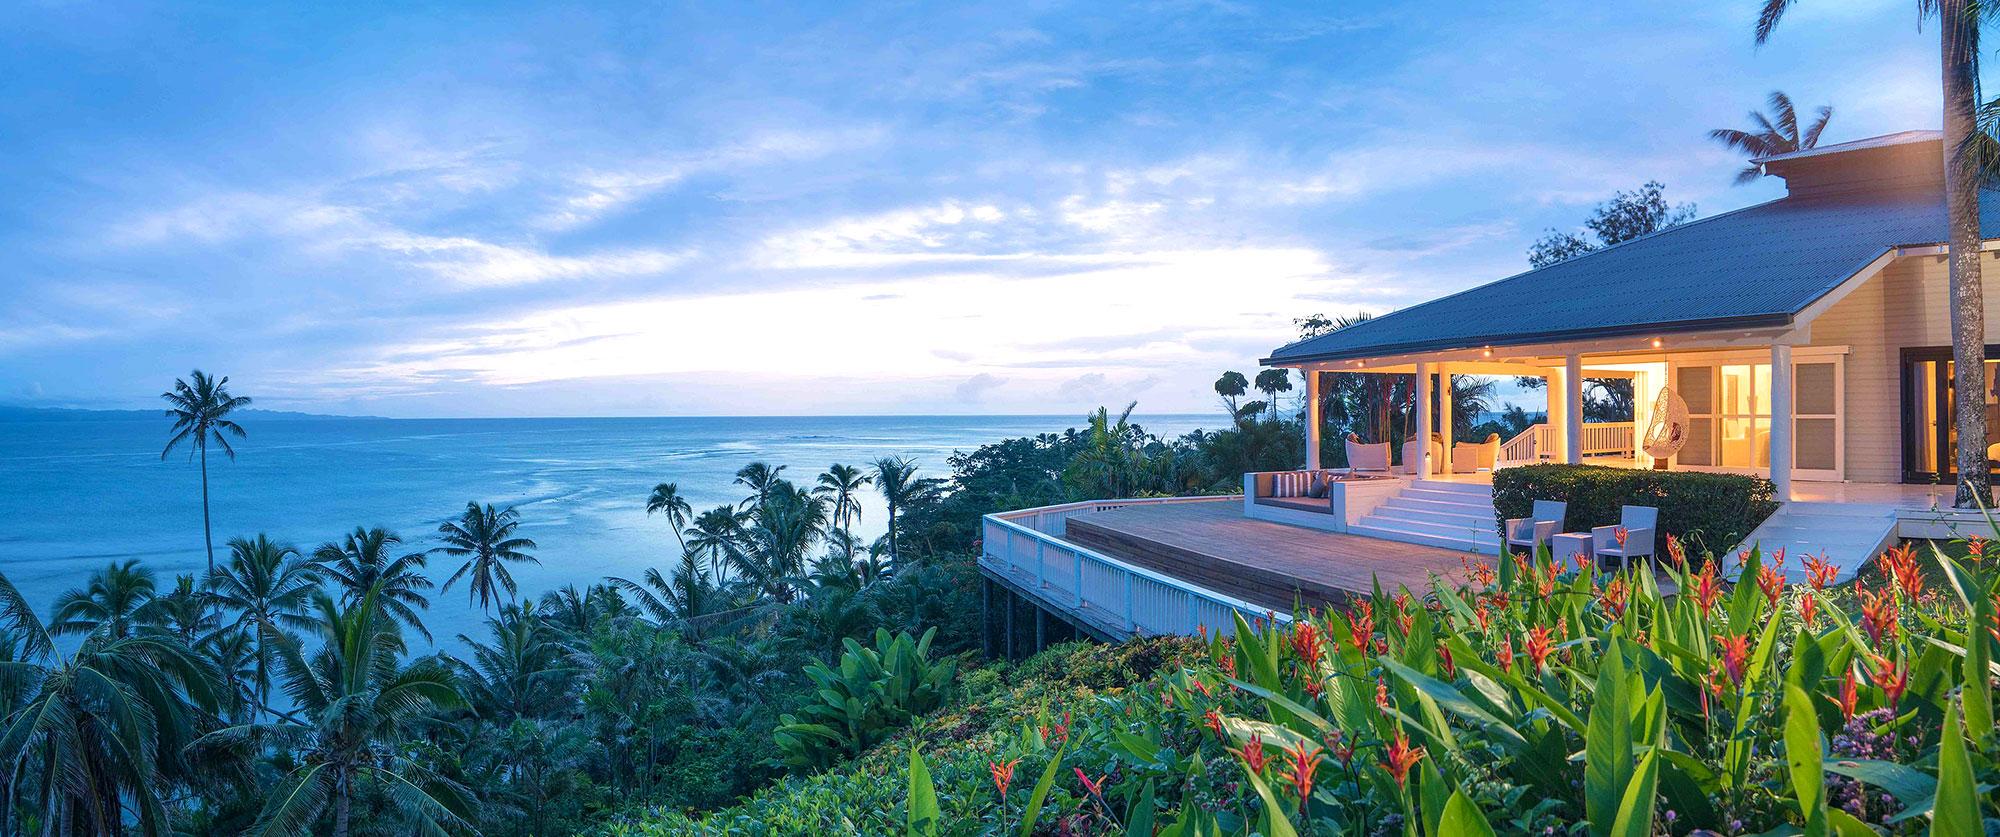 Luxury Fiji Vacations Raiwasa Family Package Down Under